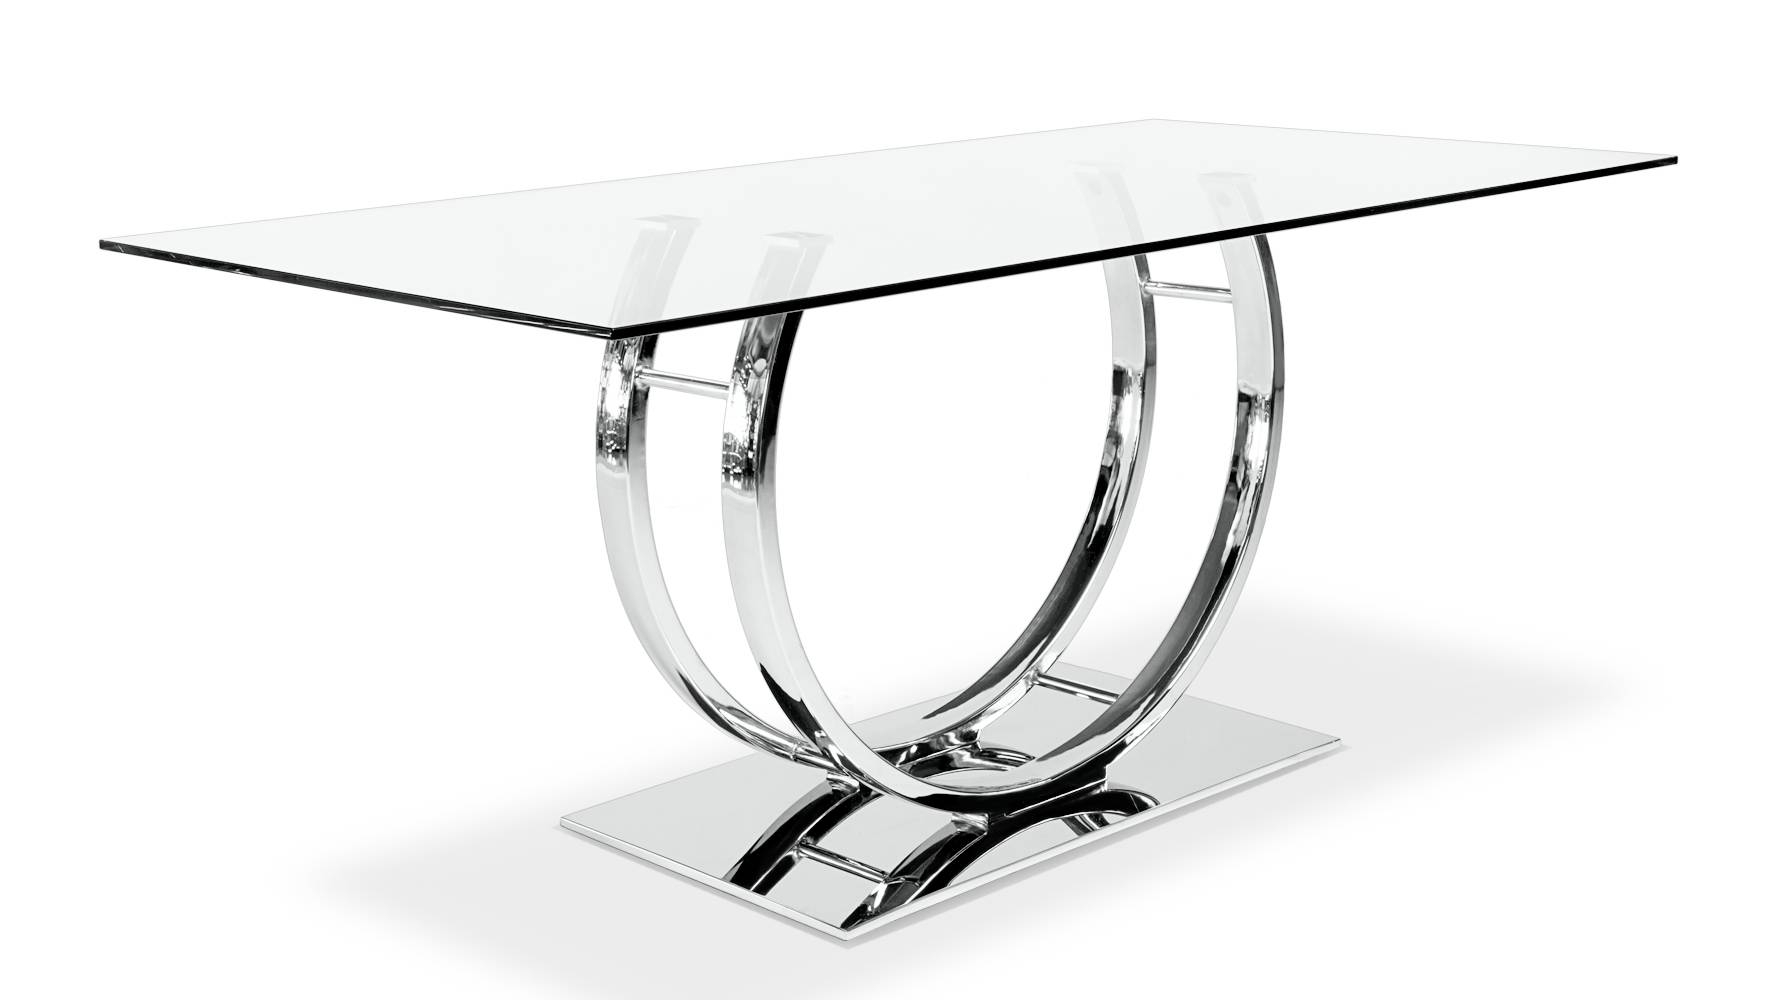 Palazzo Glass Modern Dining Table With Polished Chrome Base | Zuri With Regard To Chrome Sofa Tables (View 12 of 15)